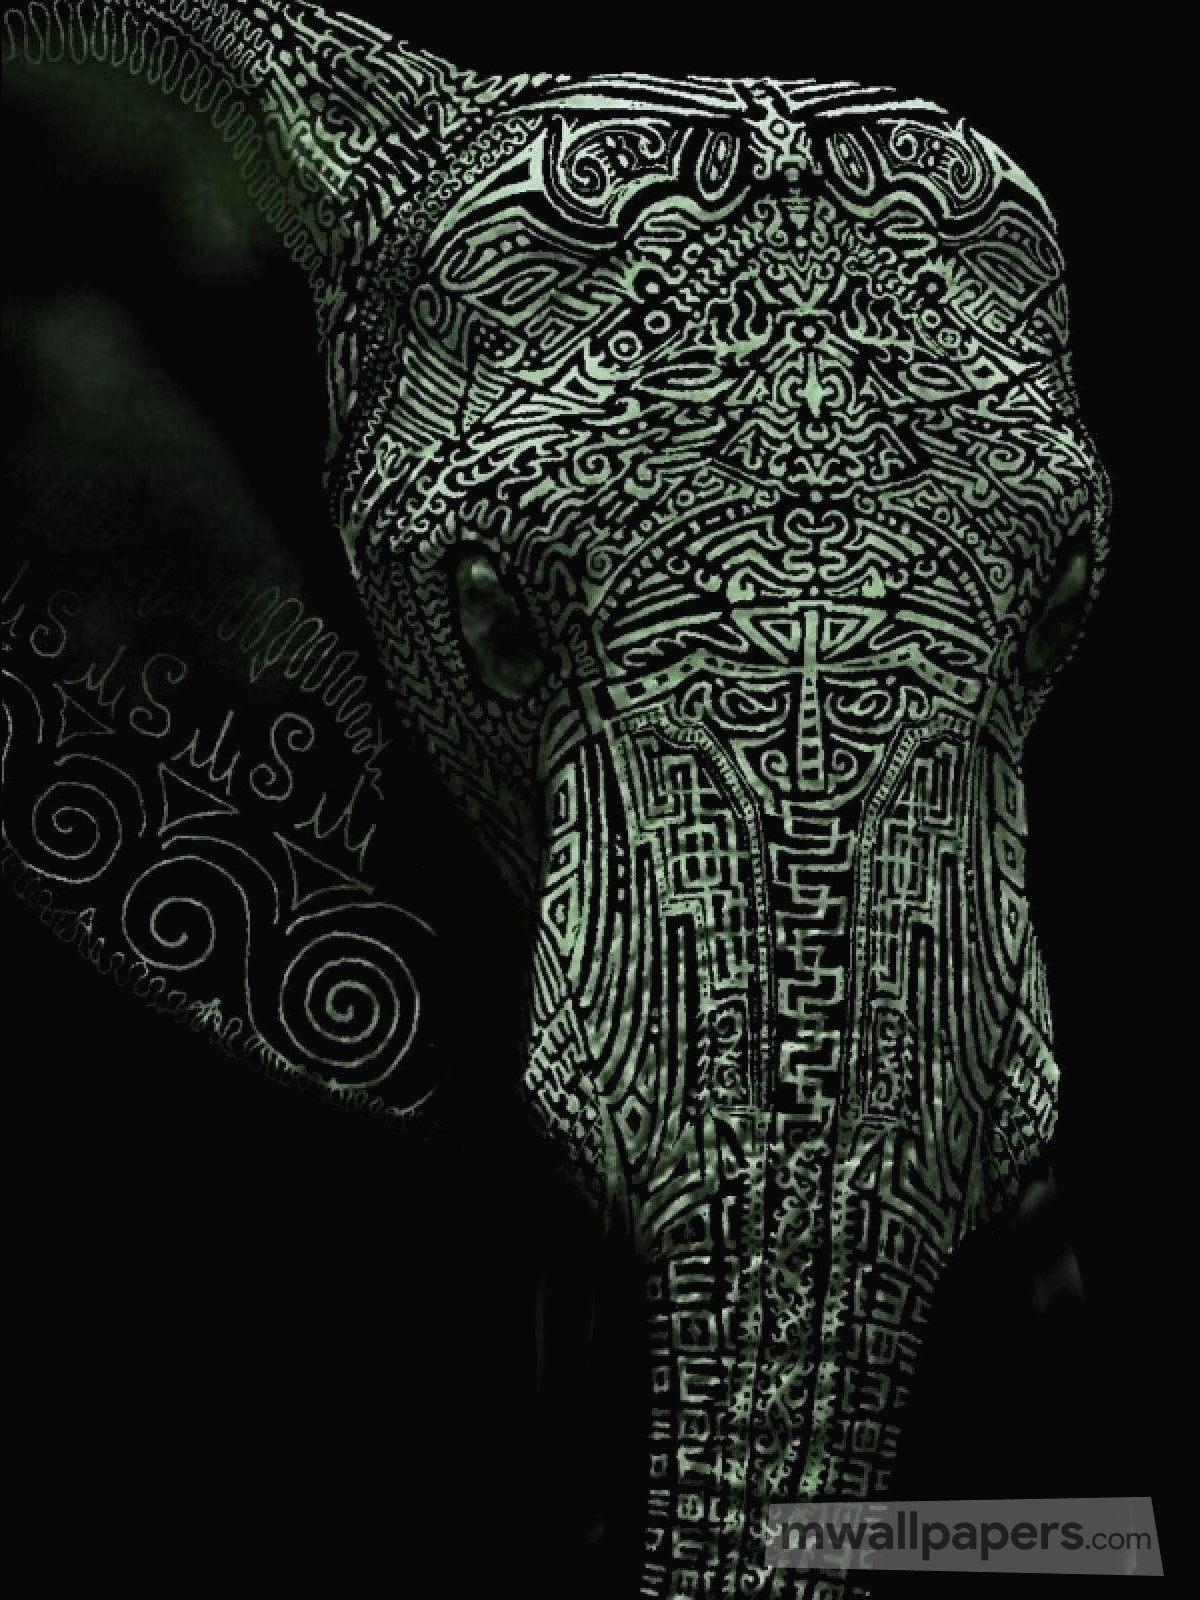 Hd Wallpaper Iphone 7 20 Elephant 2019 Hd Photos Wallpapers Download